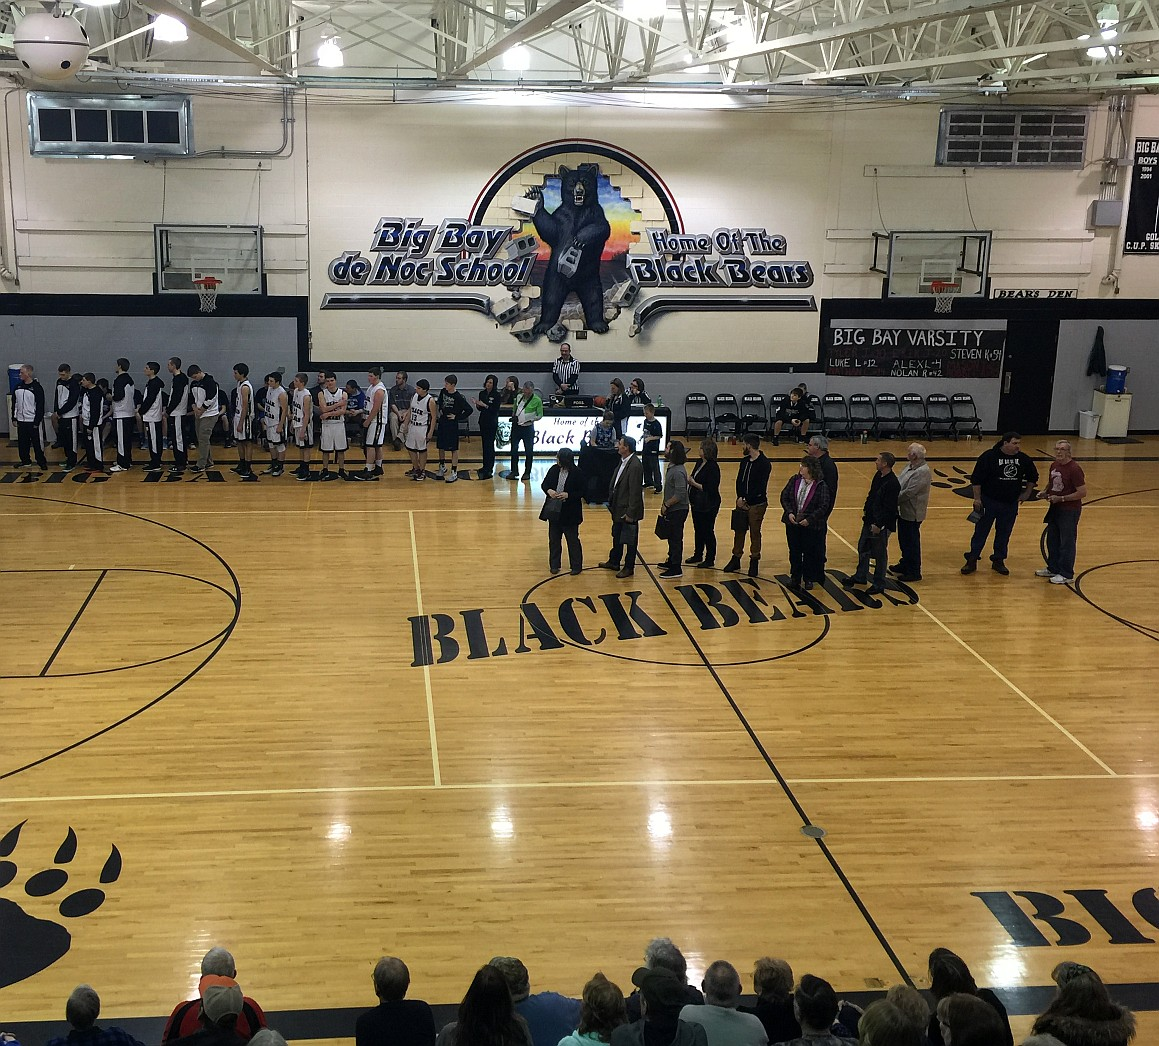 lining up on the court to be honored